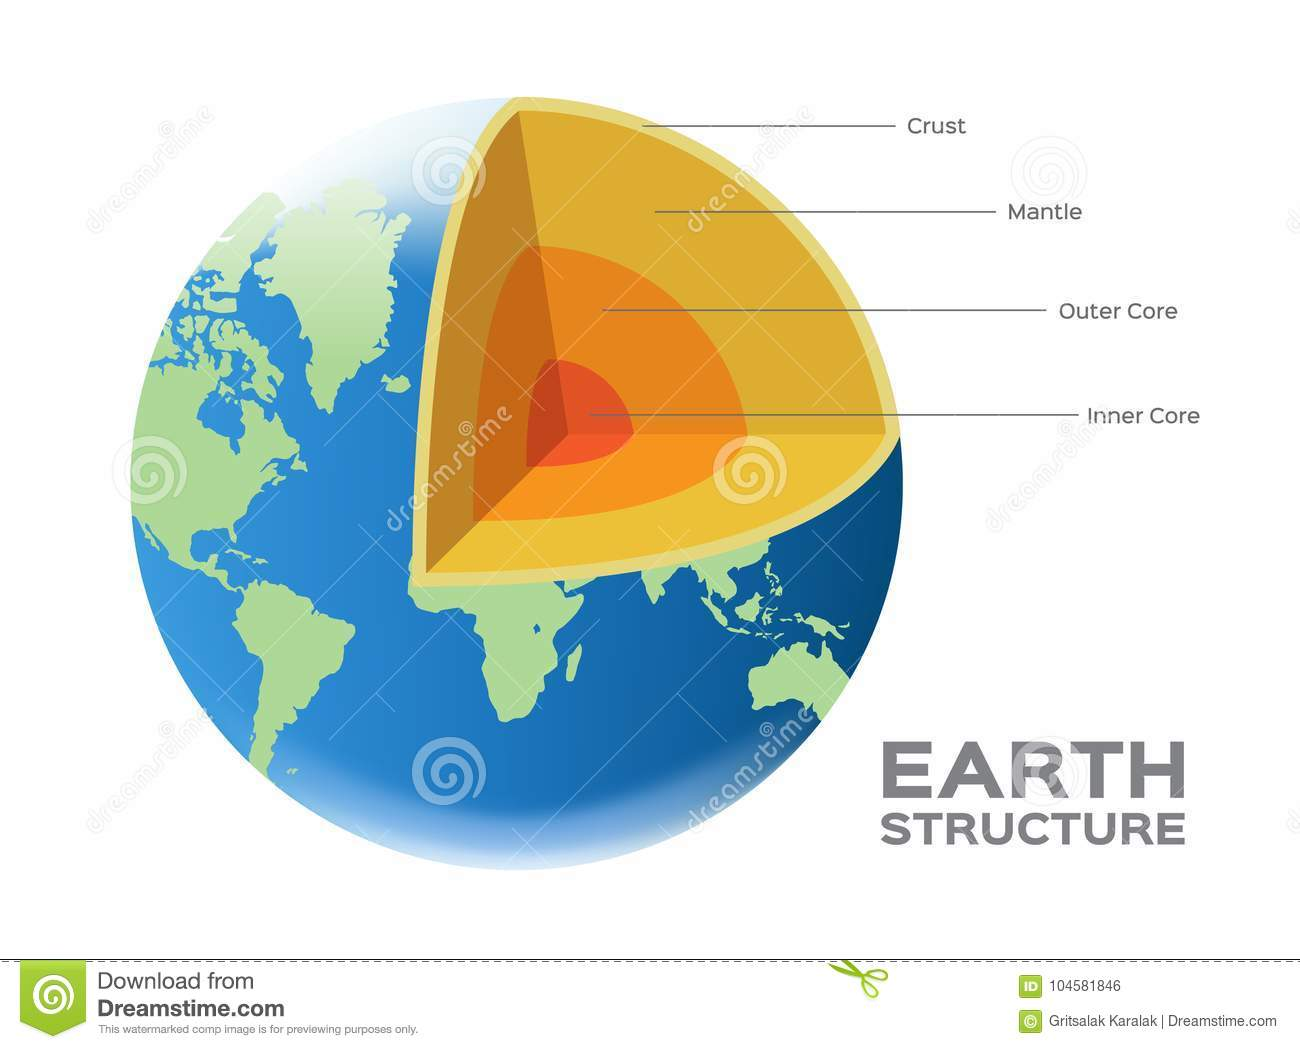 The structure of the planet: the Earths core, the mantle, the earths crust